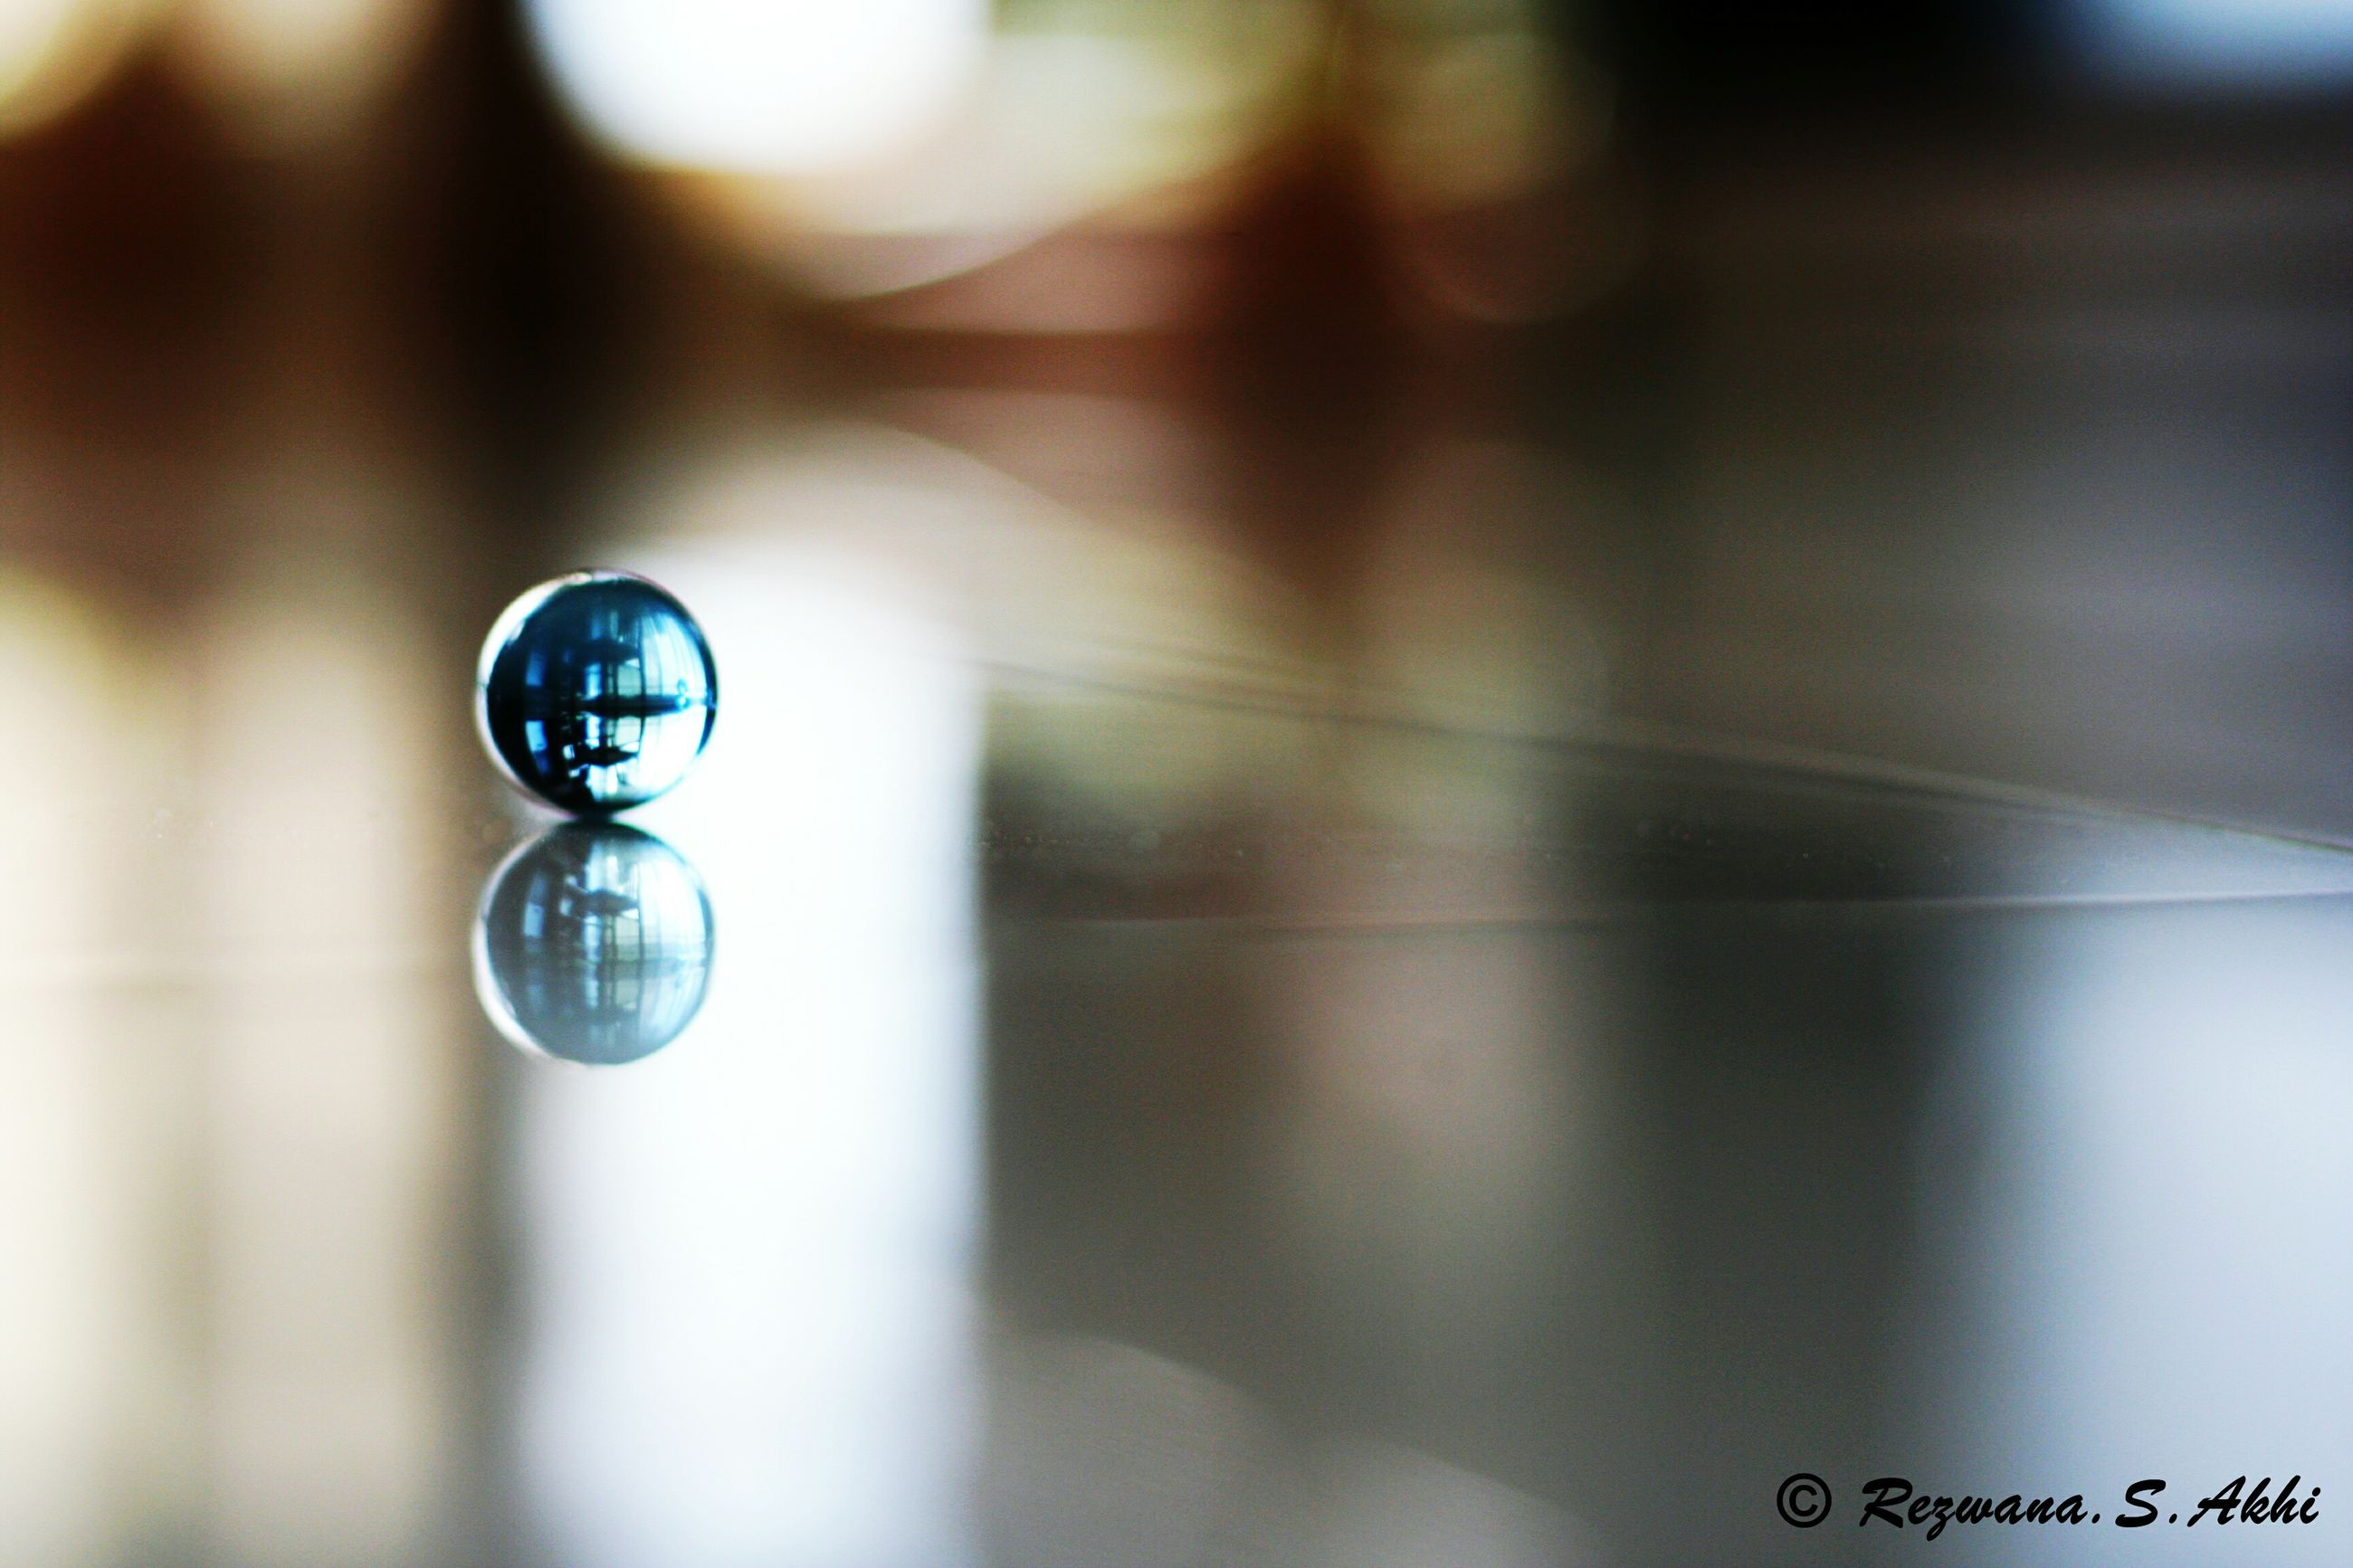 lighting equipment, focus on foreground, indoors, close-up, selective focus, hanging, low angle view, illuminated, electricity, reflection, no people, ceiling, glass - material, light bulb, electric light, day, decoration, technology, transparent, sphere